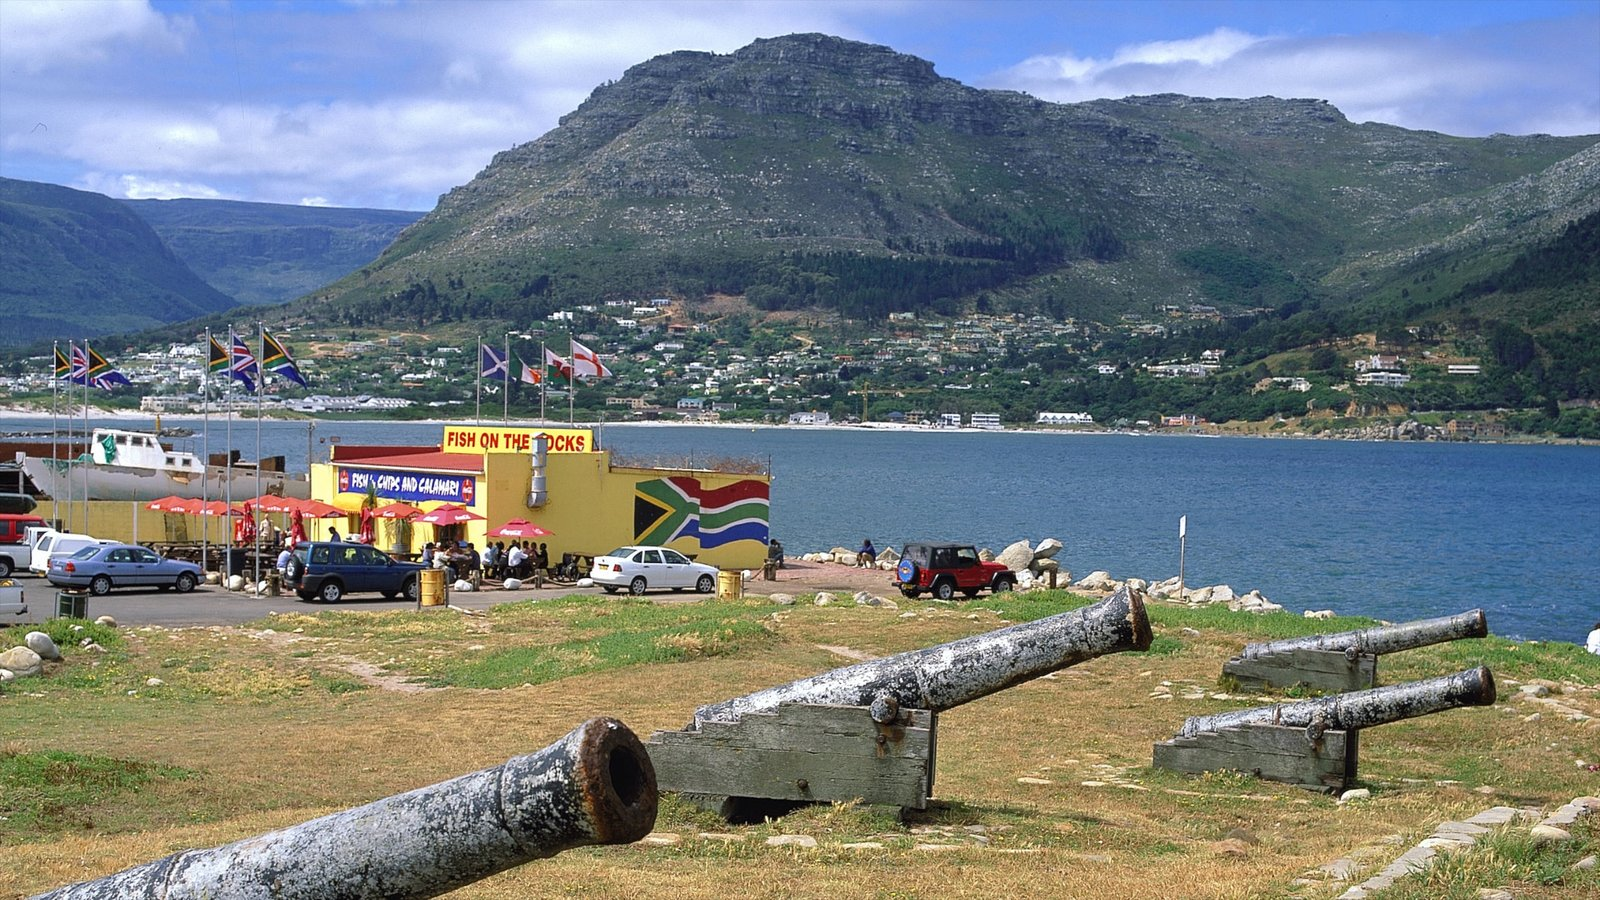 Hout Bay Beach featuring outdoor art, a coastal town and a bay or harbour